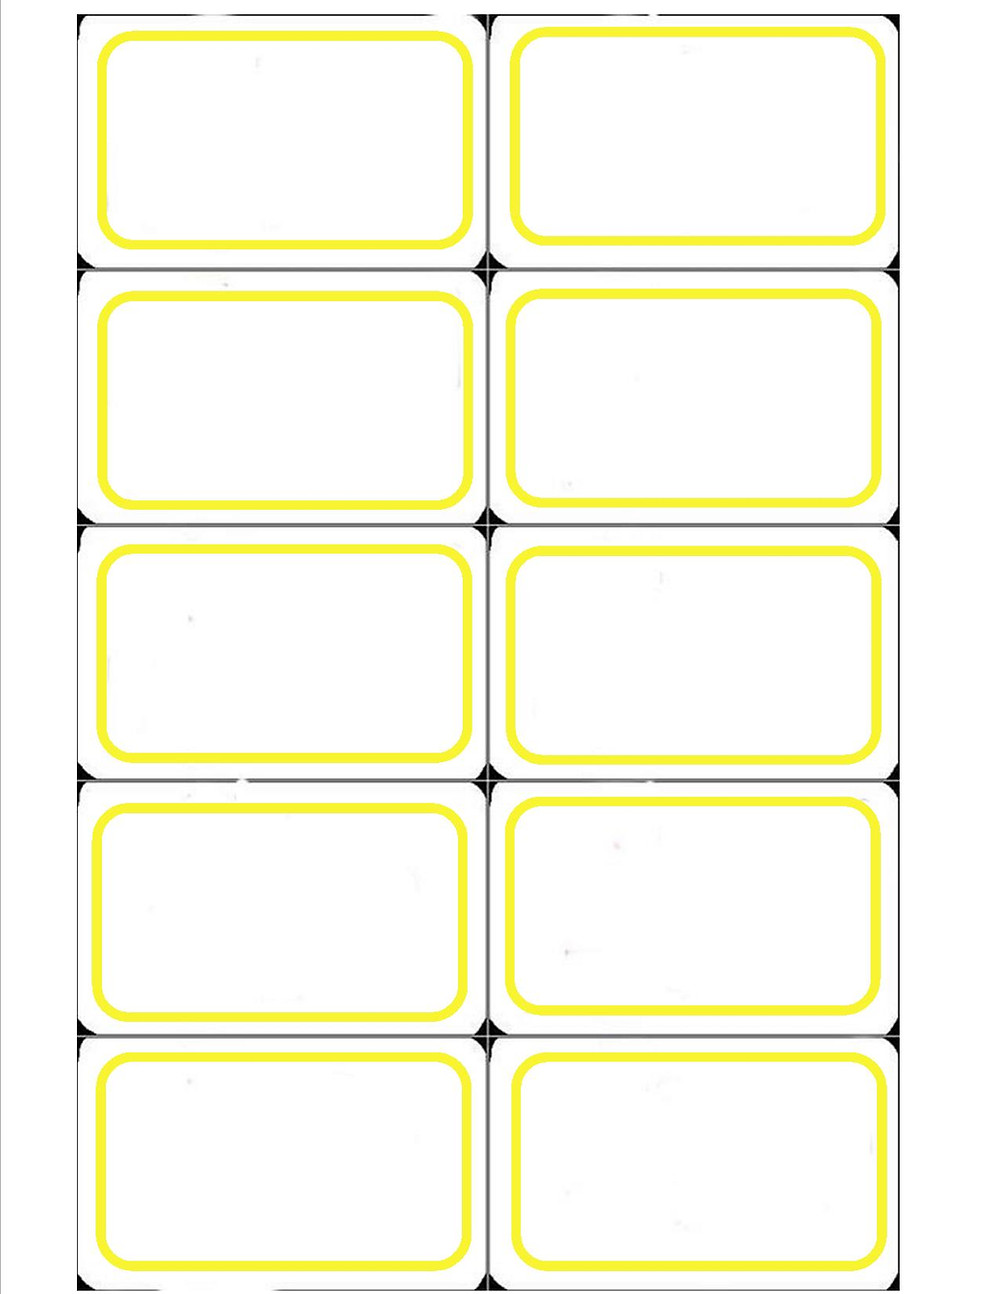 Make Your Own Board Game In Clue Card Template